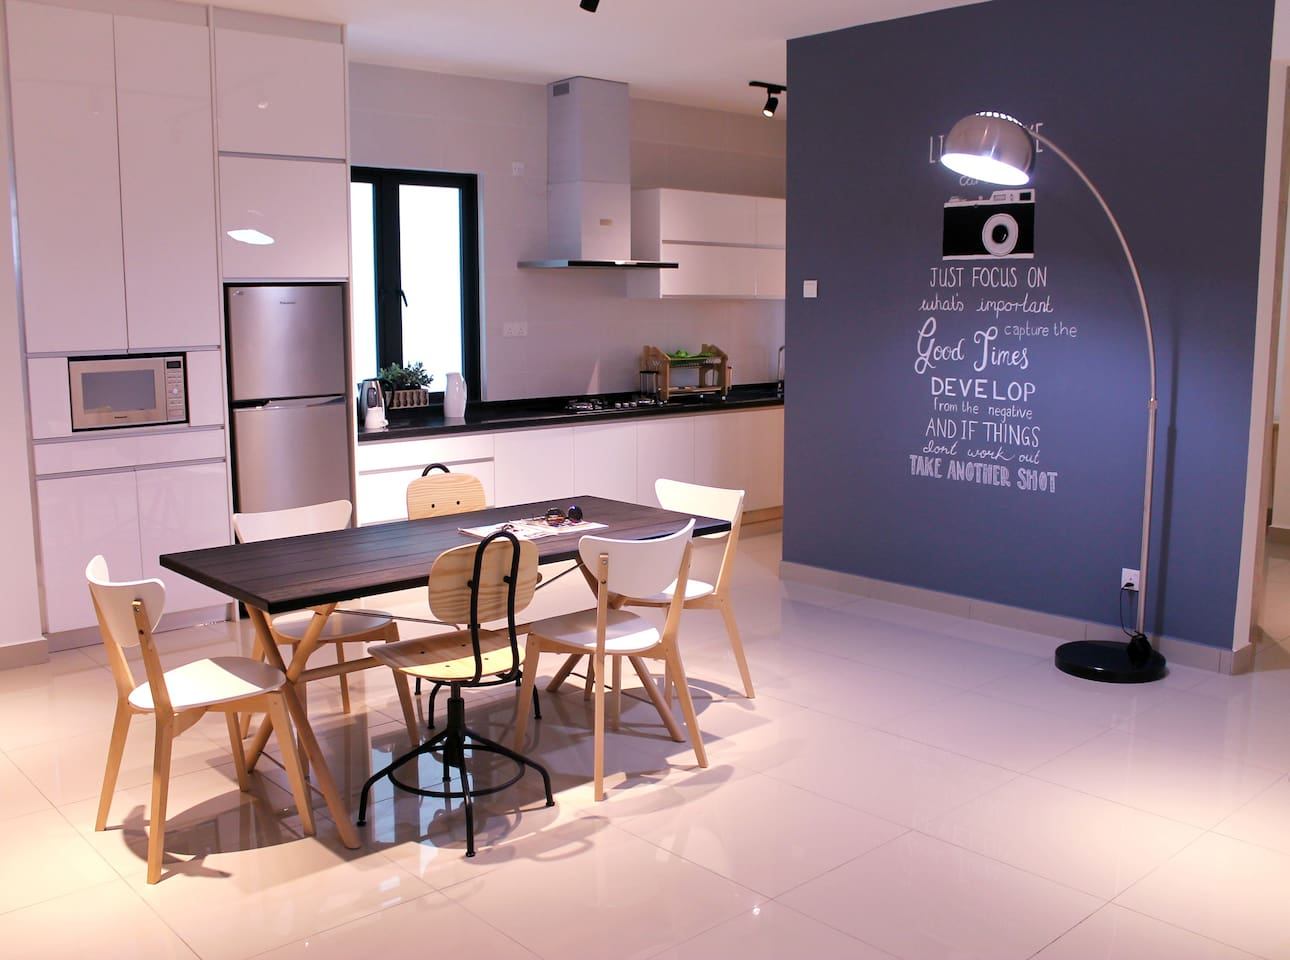 Spectacular view of the Dining table and kitchen with and amazing life quote